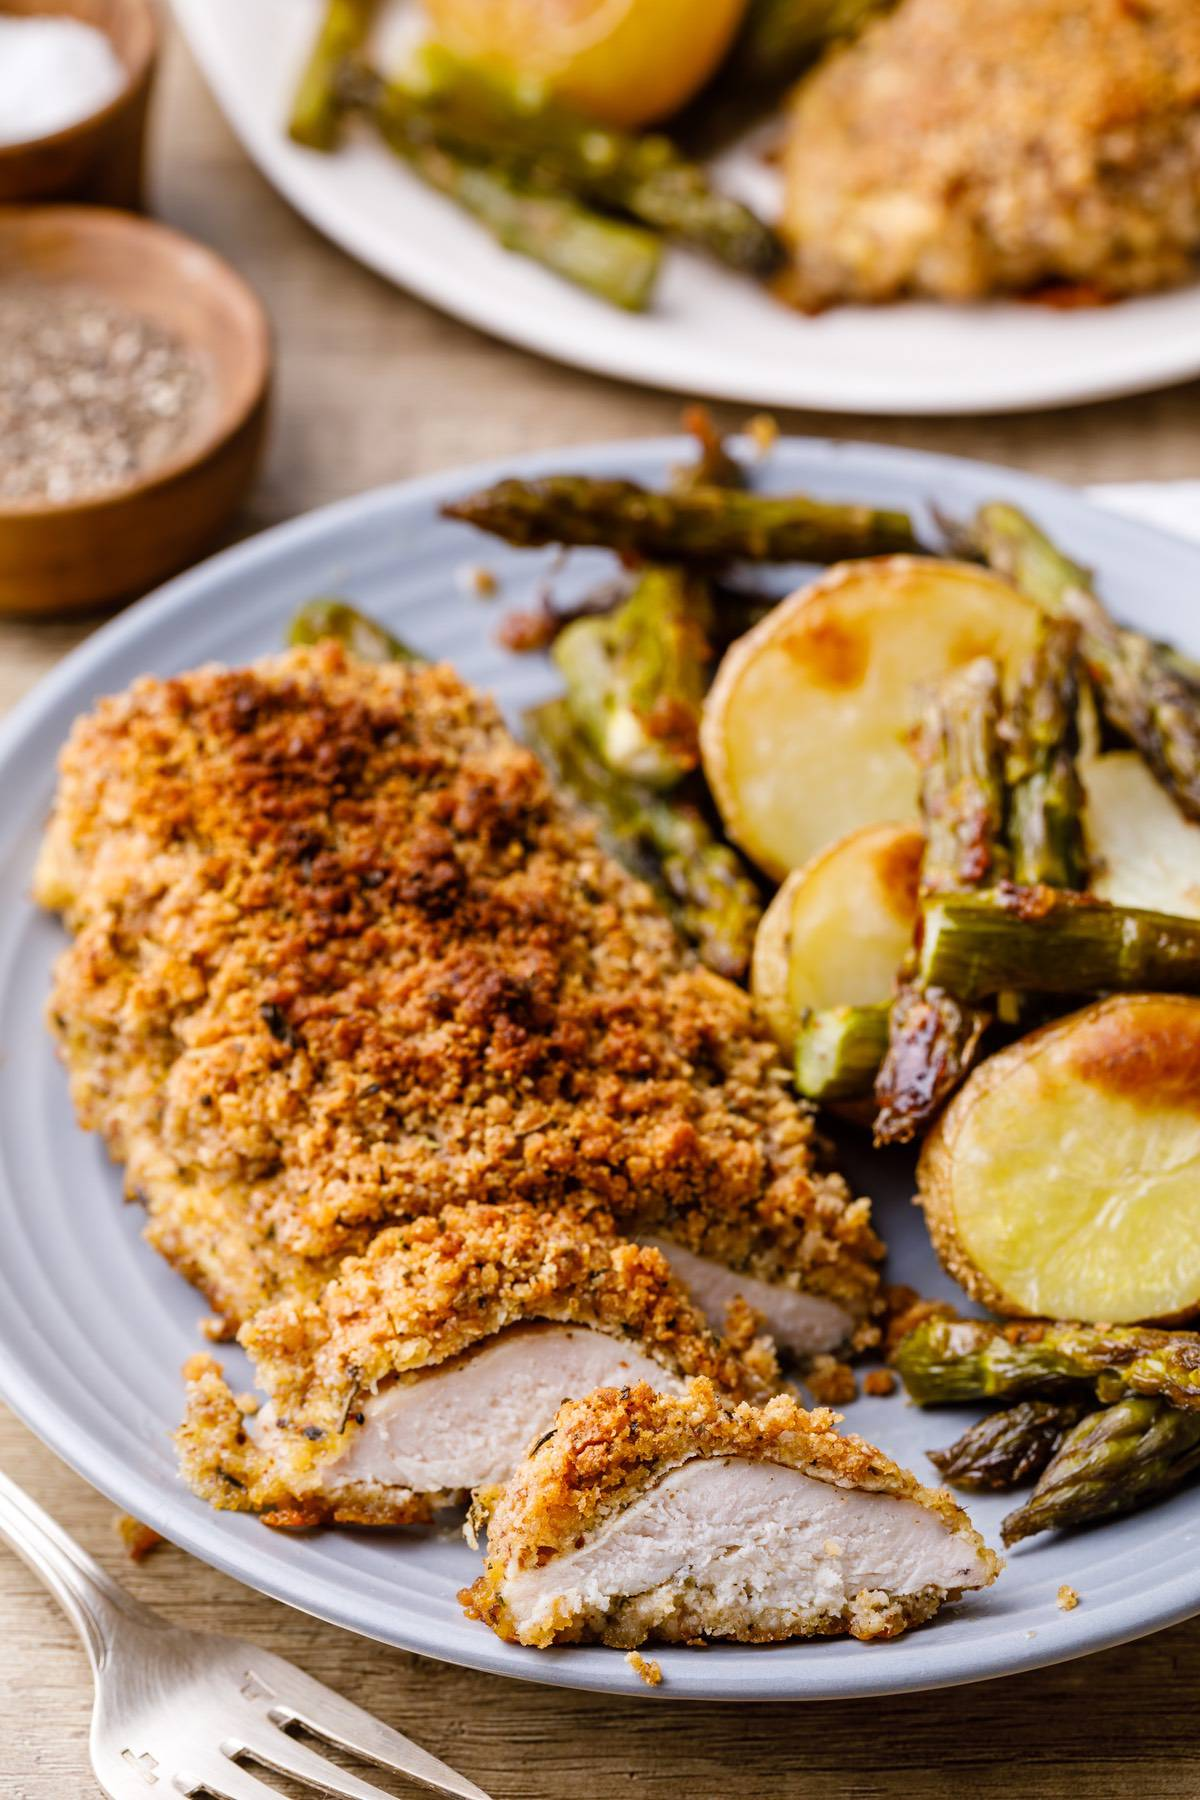 Baked Sheet Pan Chicken And Asparagus Recipe